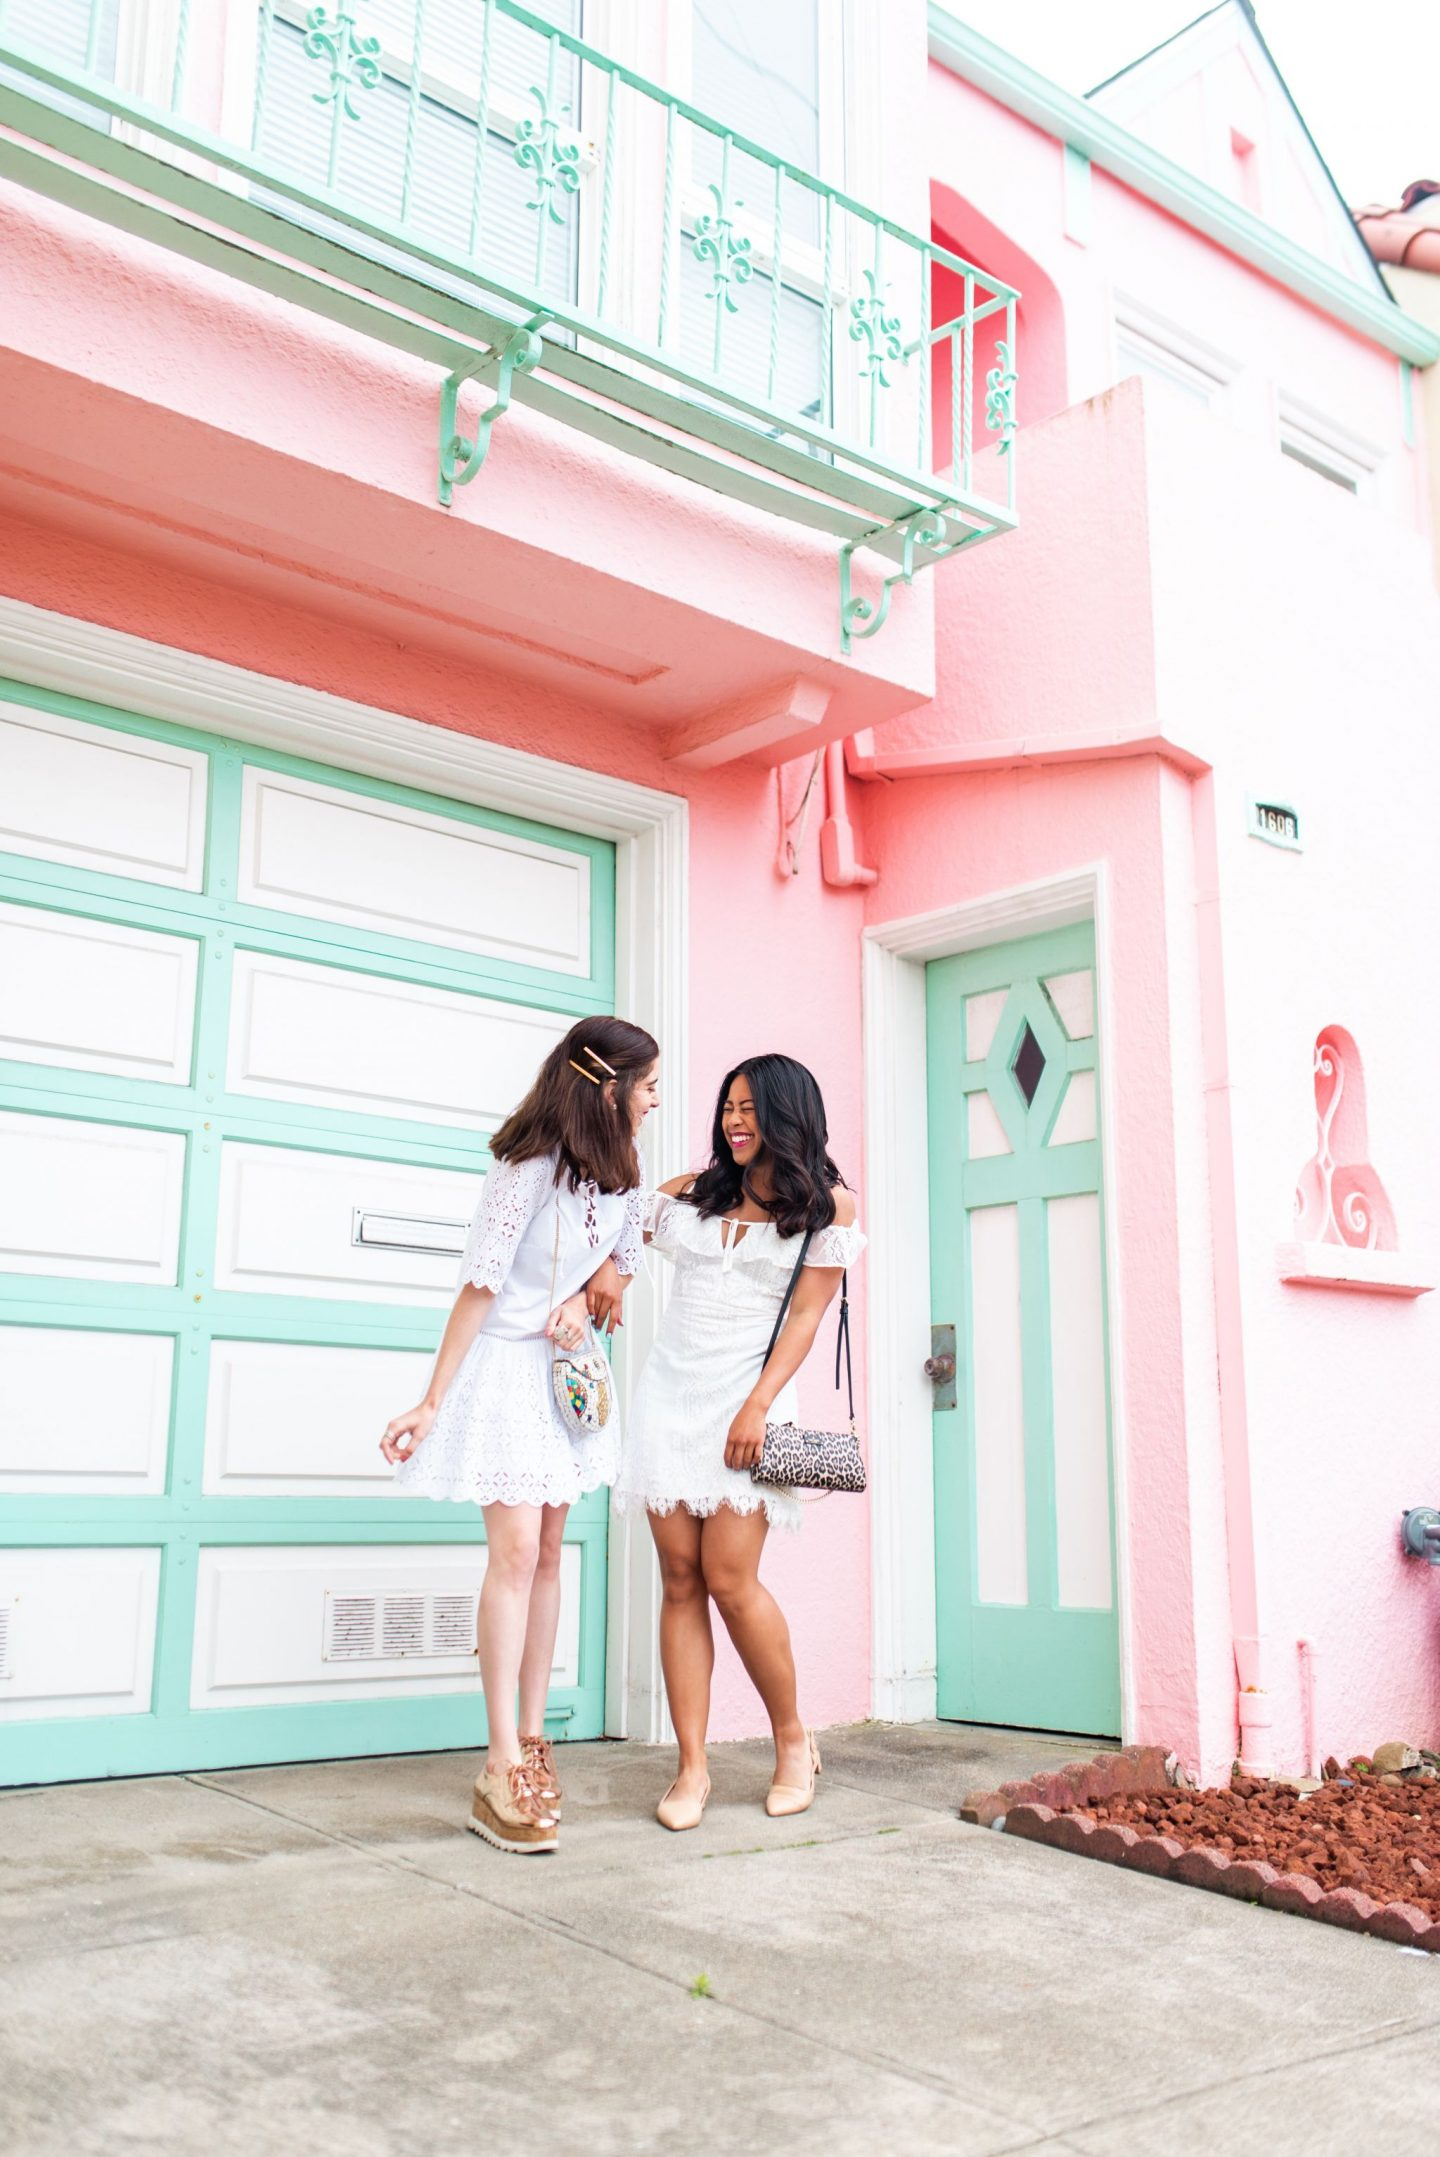 how to pose with friends - san francisco pink house